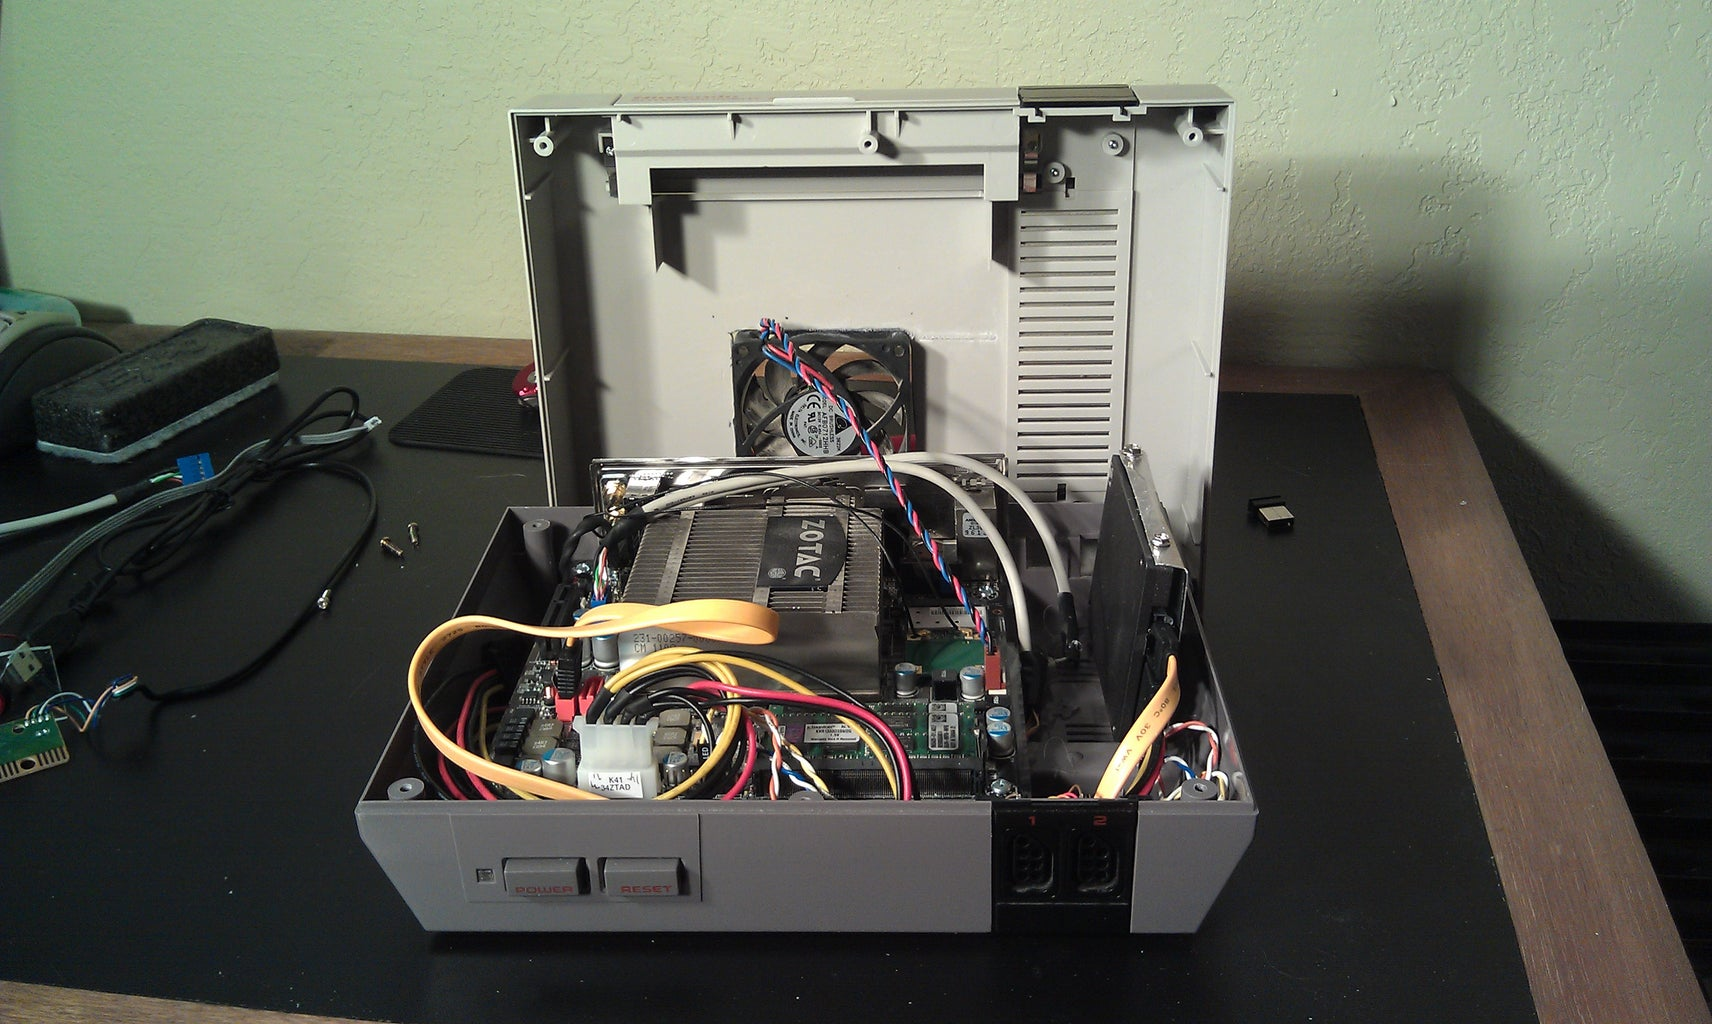 Put in the Motherboard